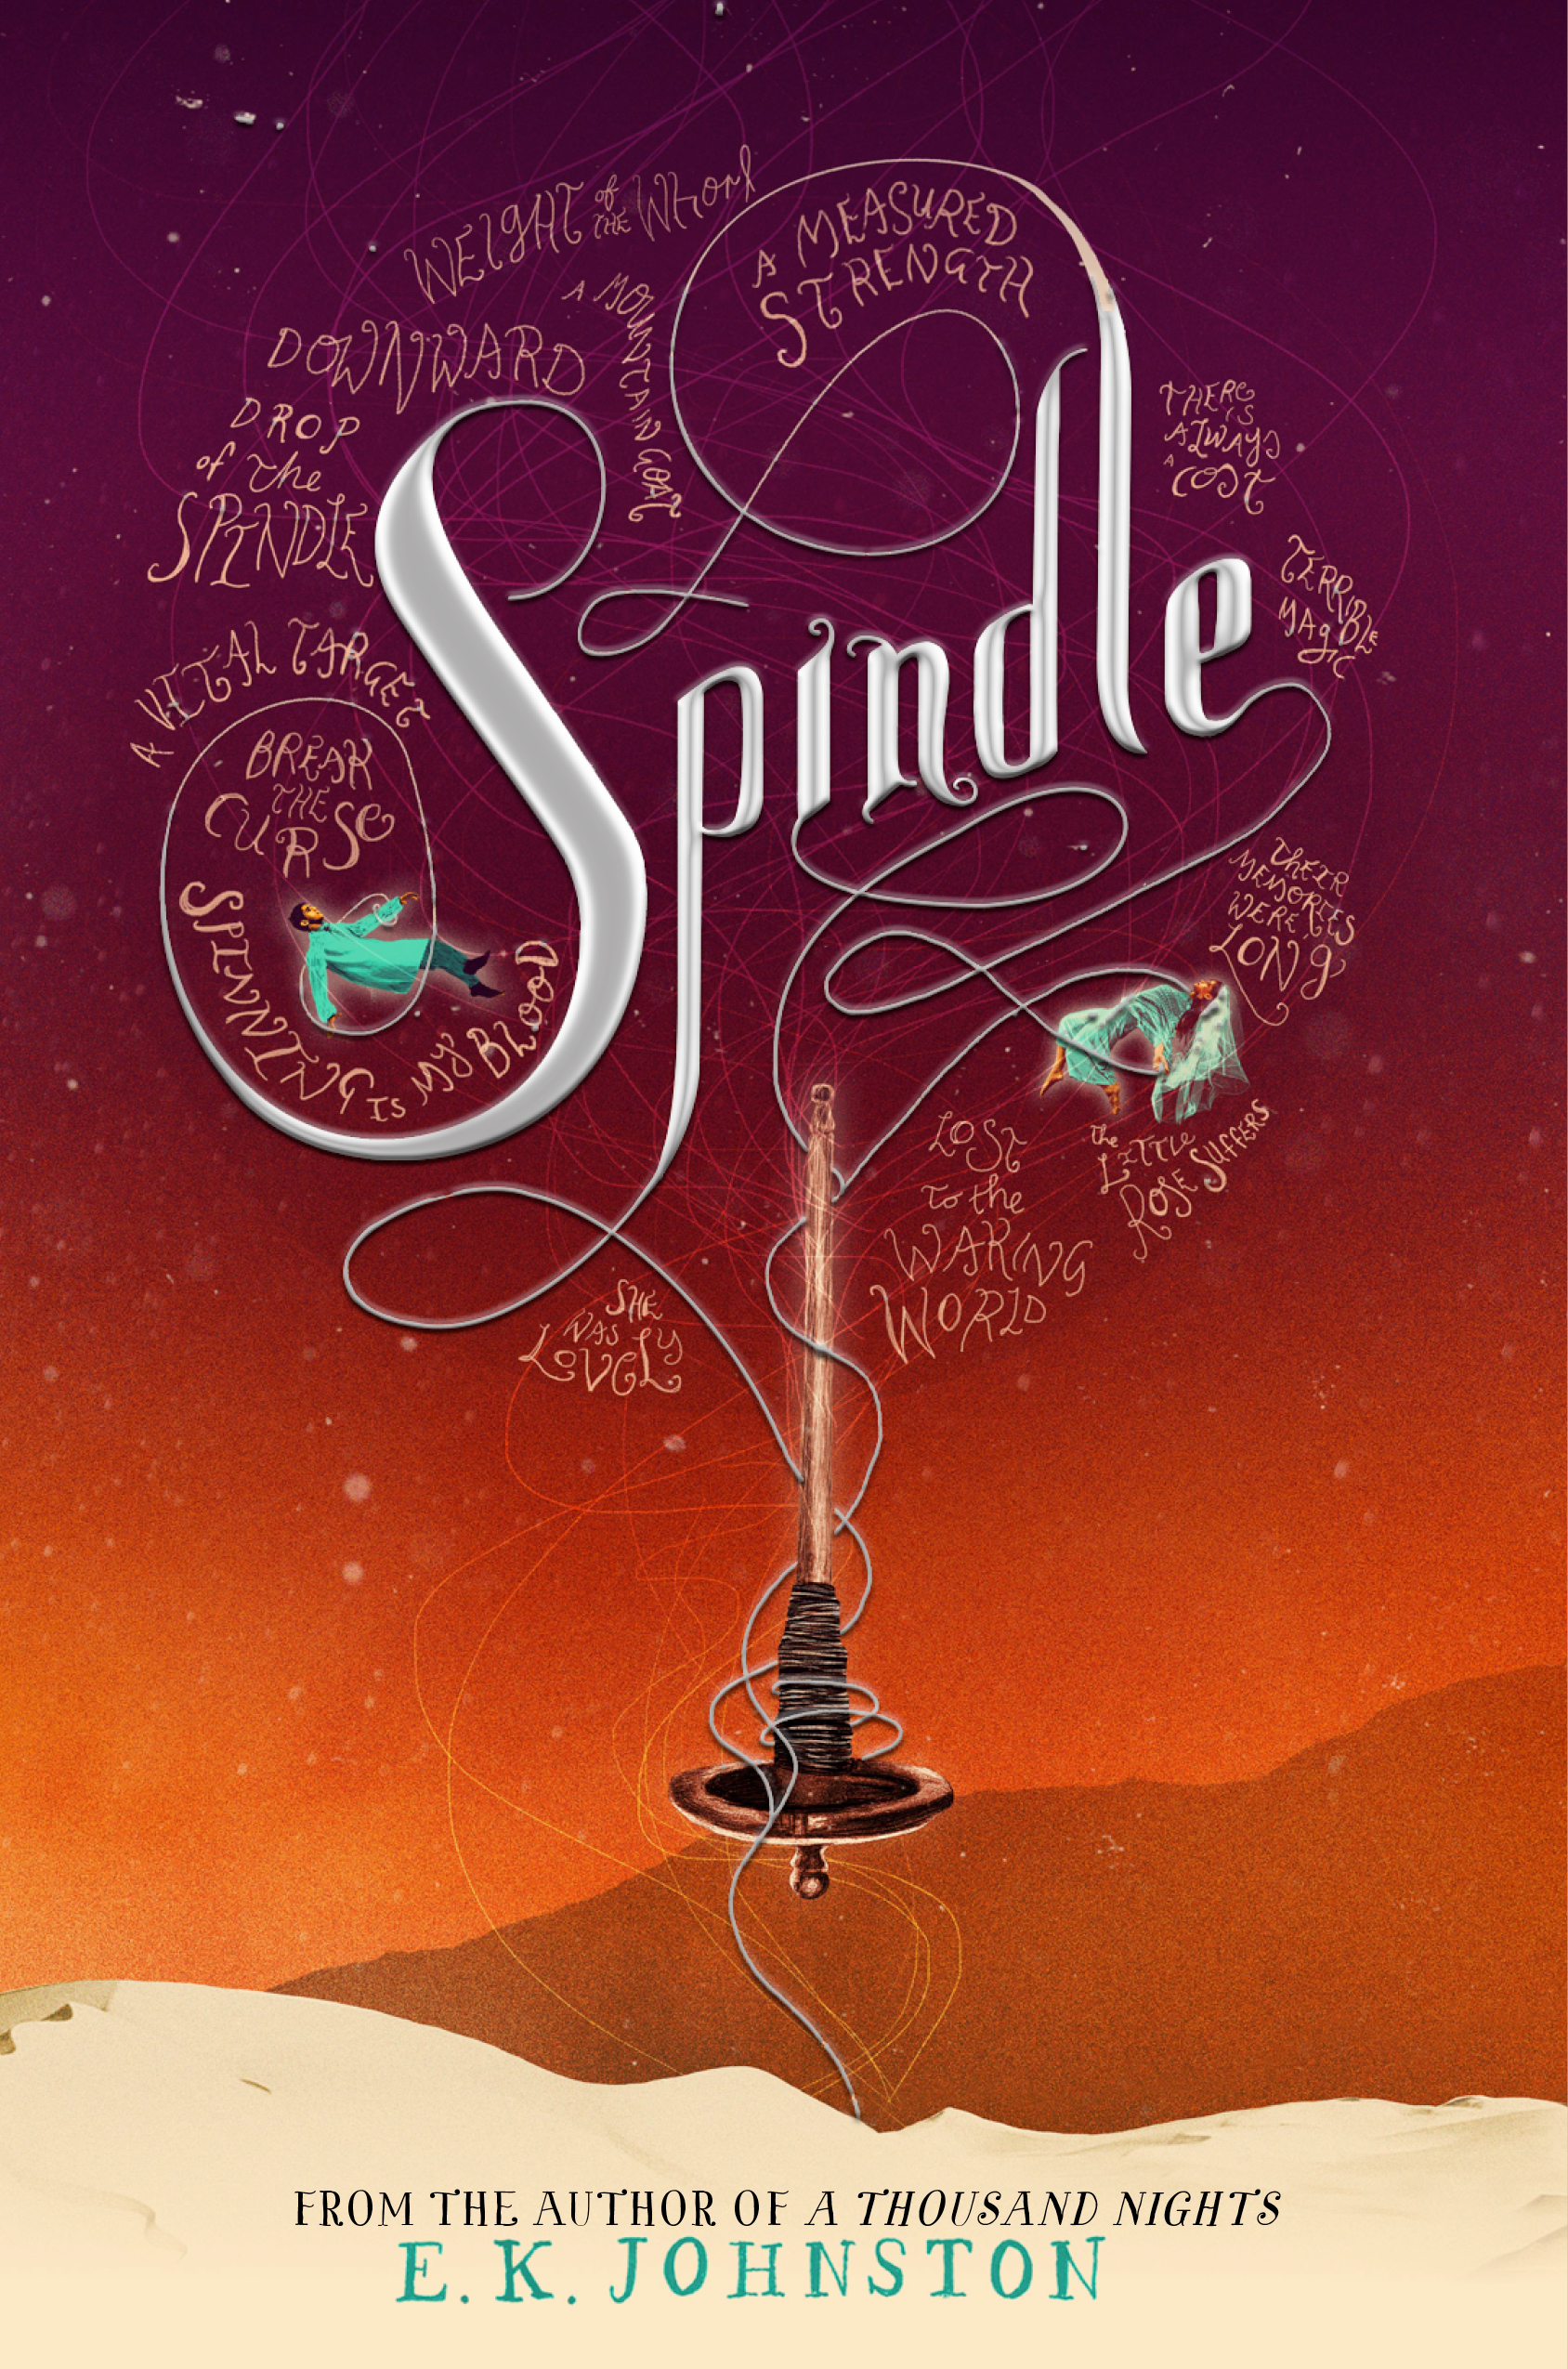 spindle final cover art.jpg